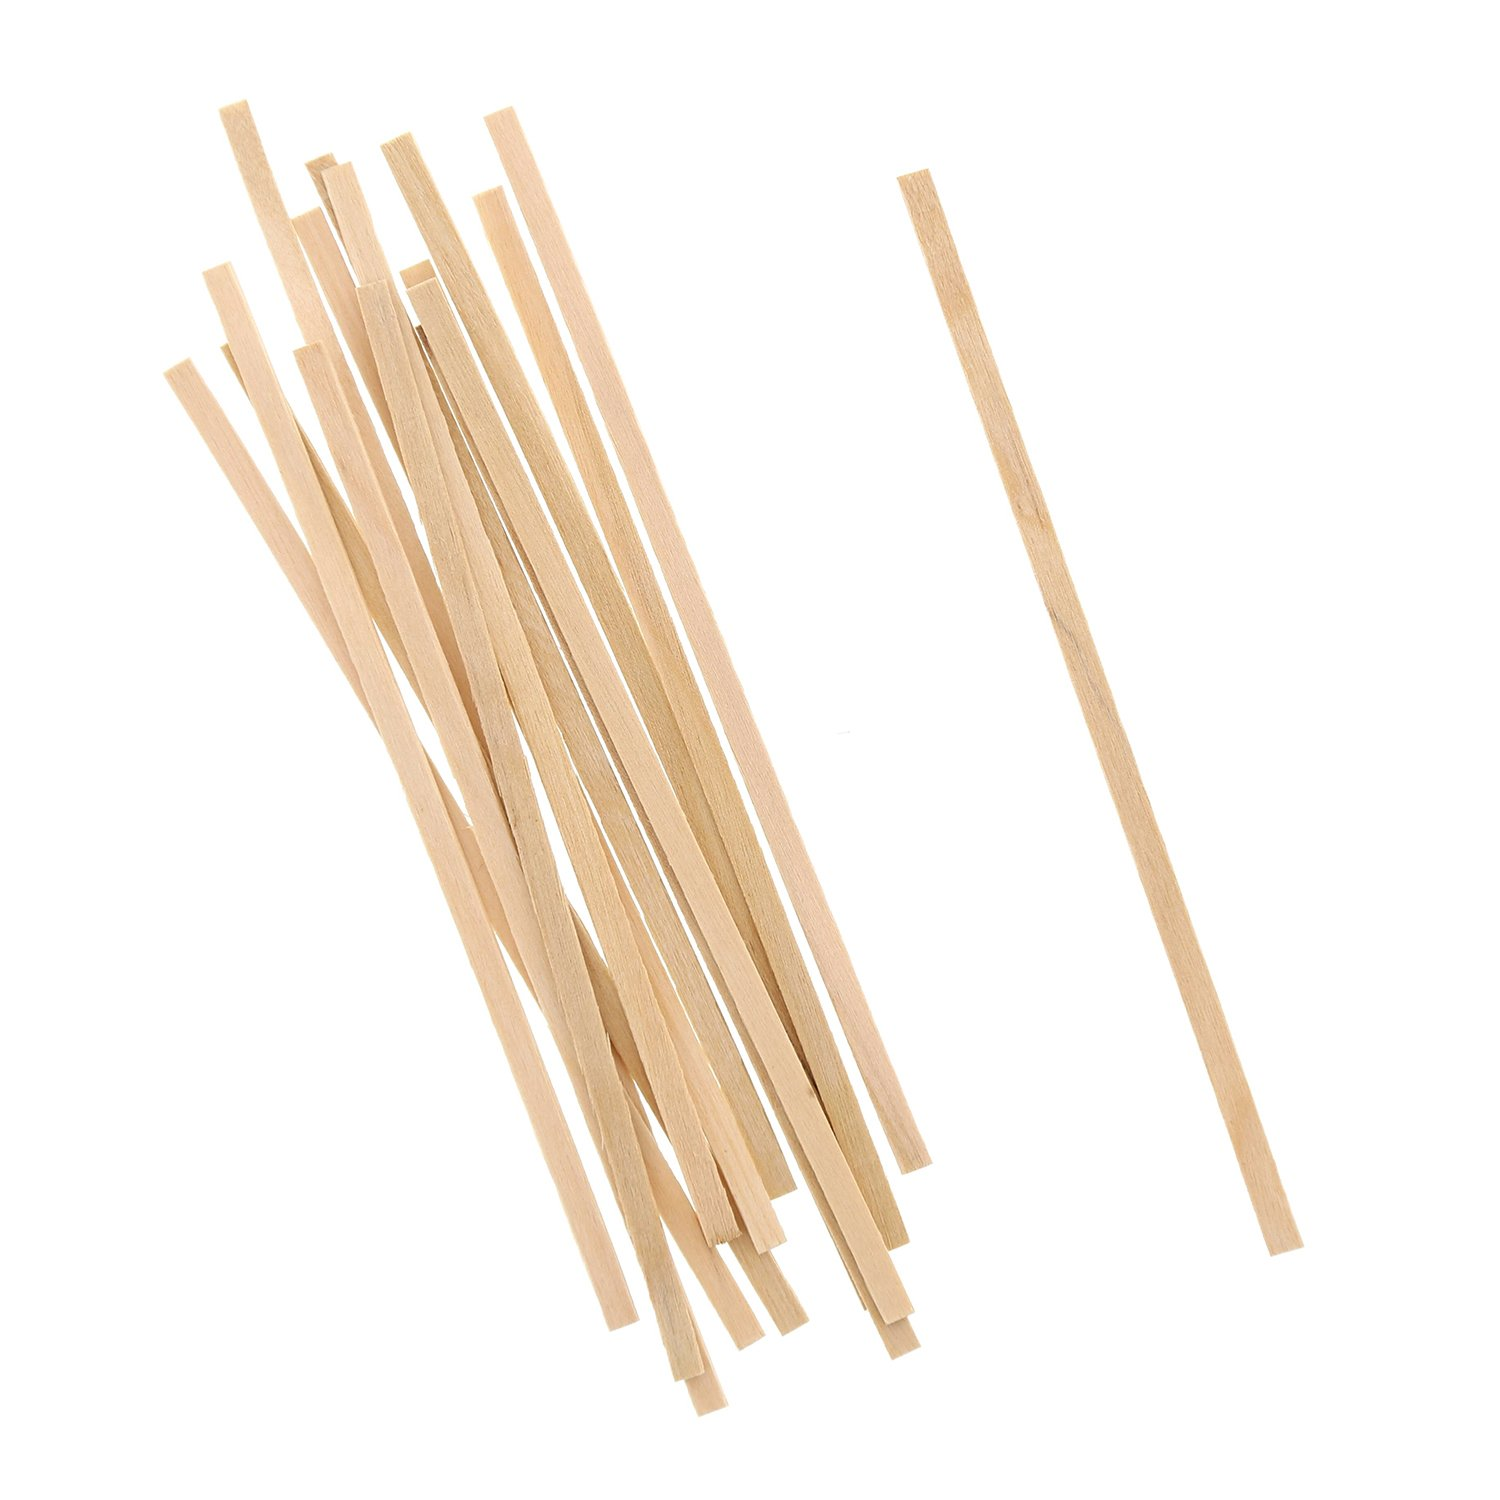 Royal 1000 Count Wood Coffee Beverage Stirrers, 5.5'' by Royal (Image #3)